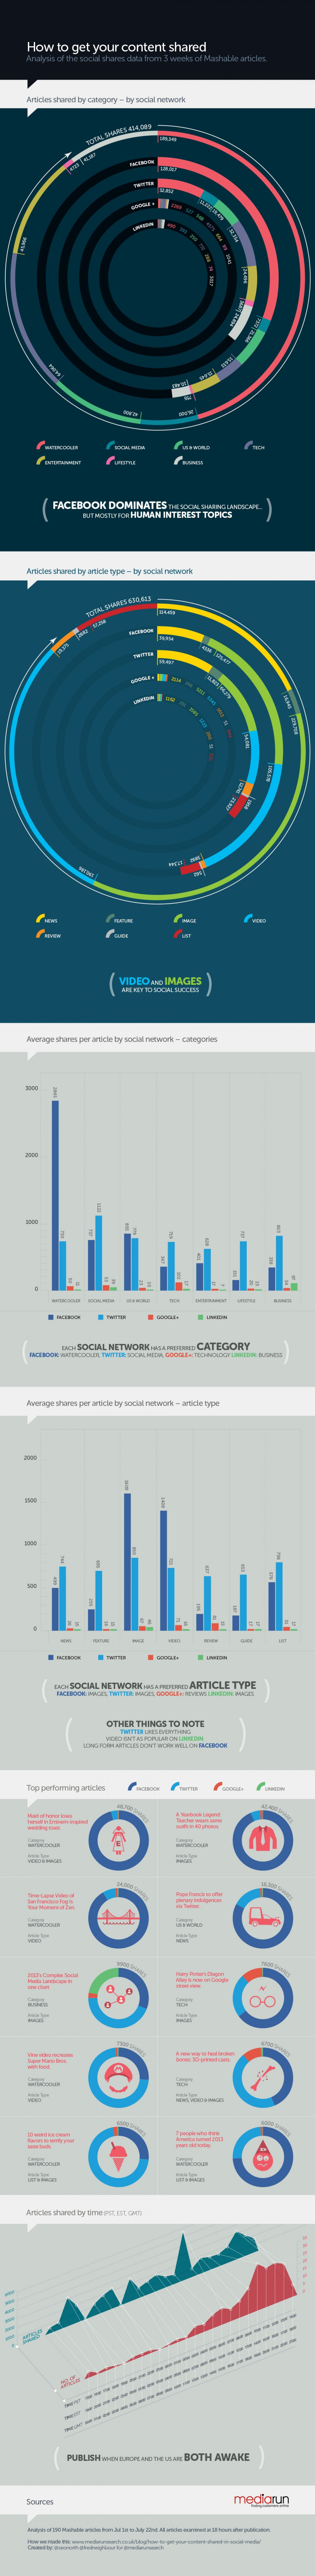 How to Get Your Content Shared Infographic